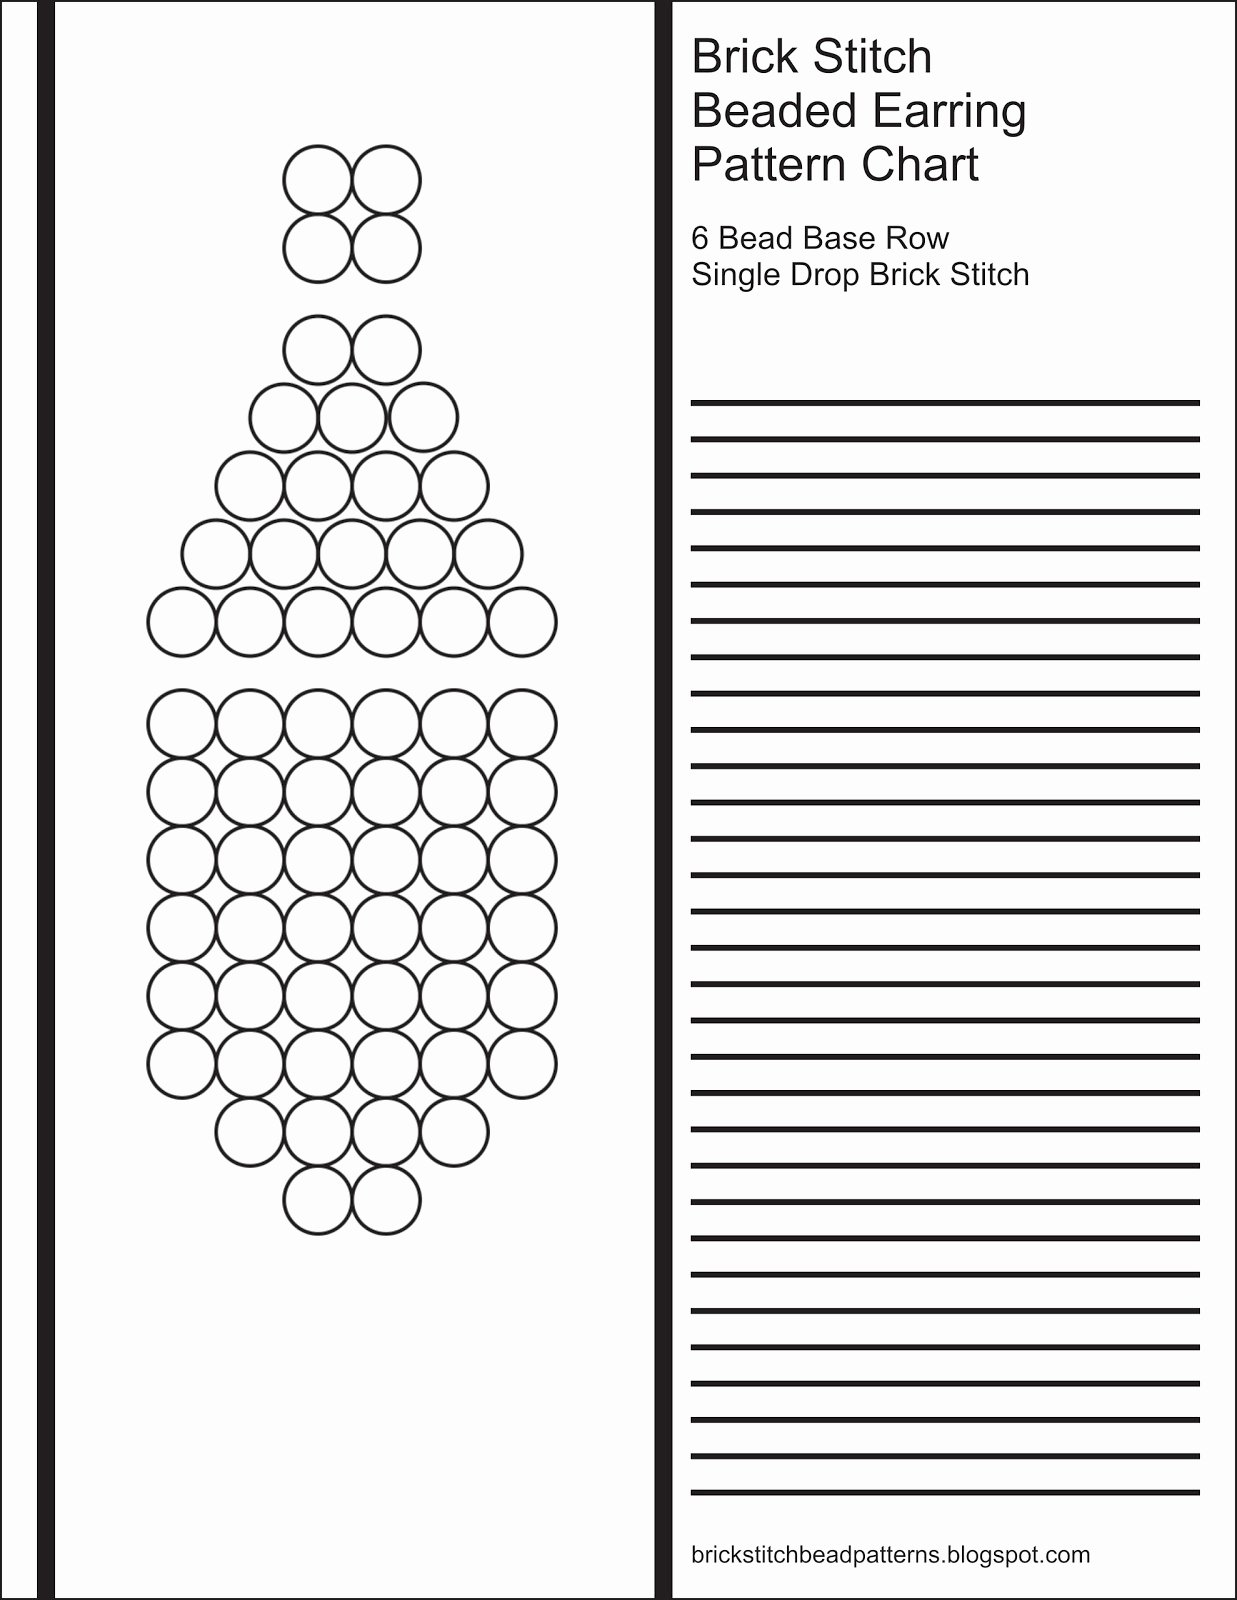 Printable Brick Pattern Unique Brick Stitch Bead Patterns Journal 6 Bead Base Row Blank